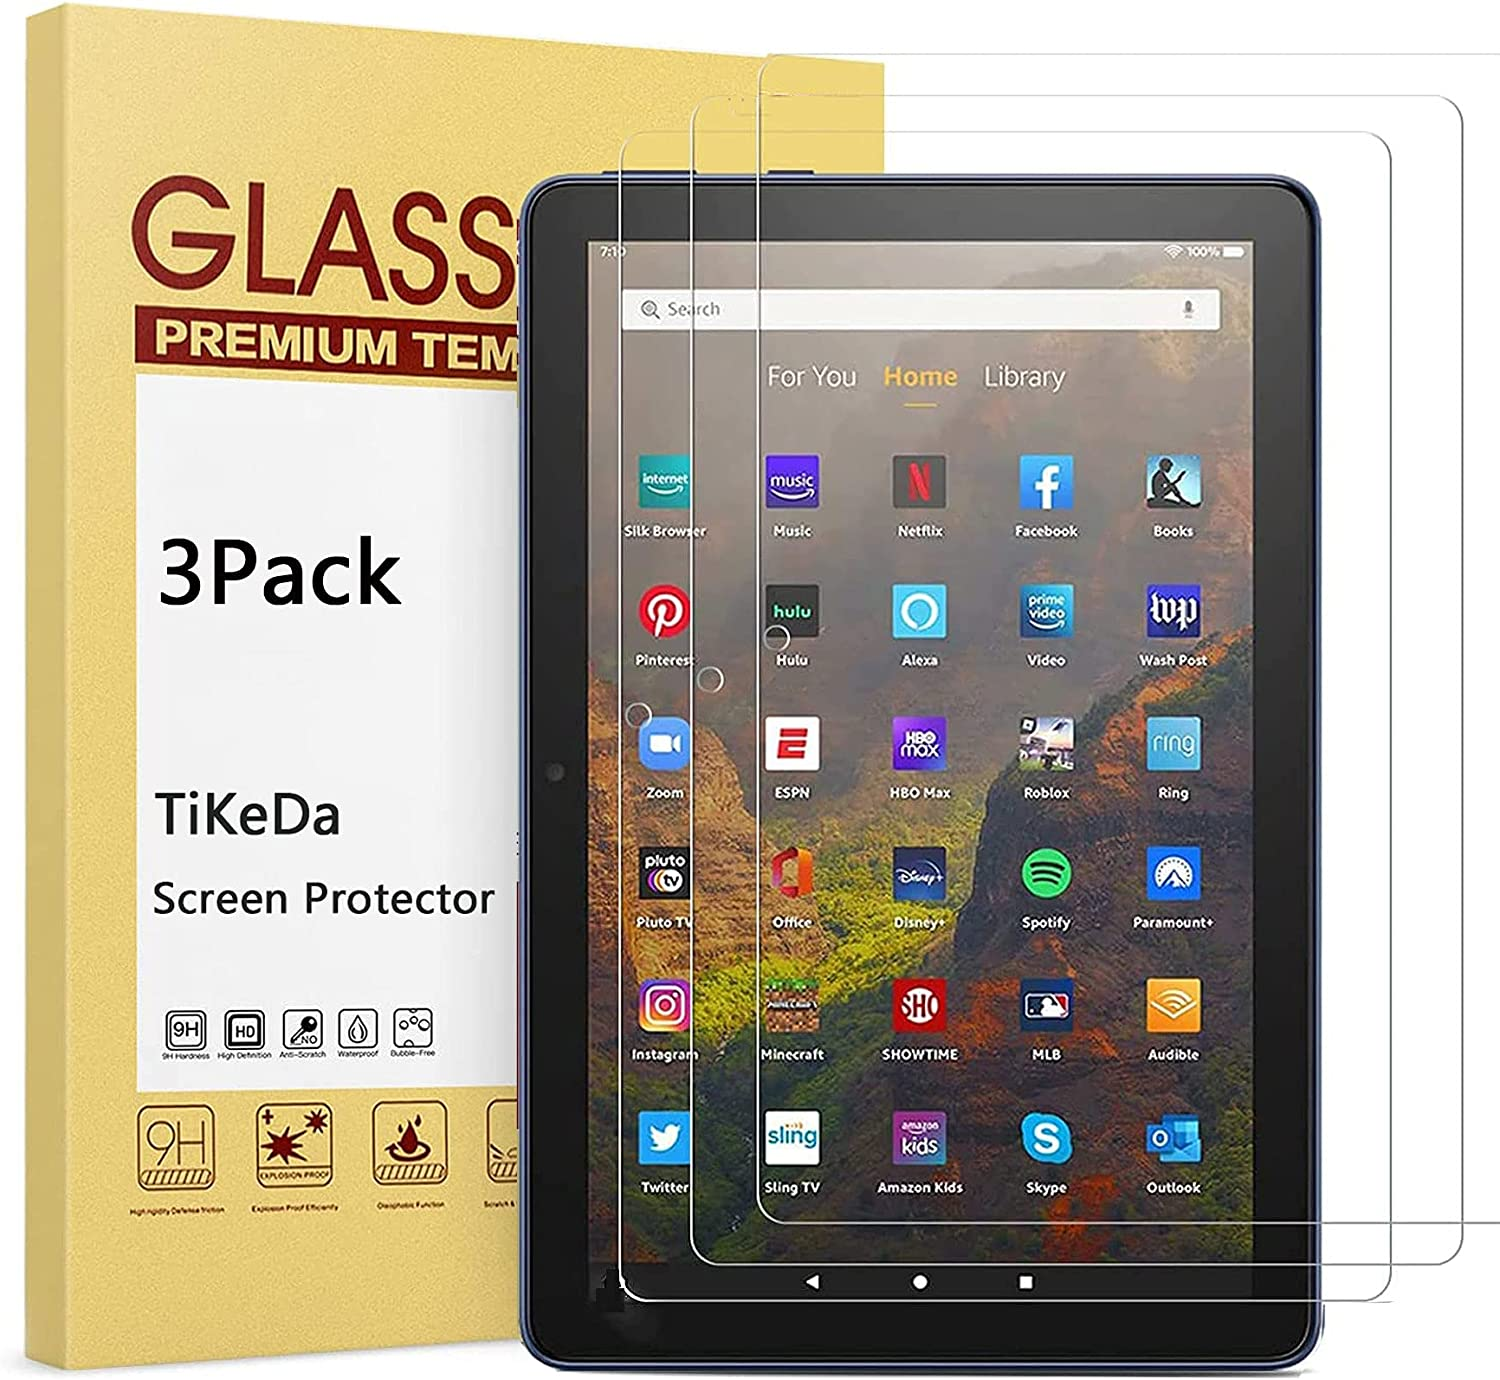 [3 Pack]-TiKeDa Screen Protector for All New Fire HD 10 Tablet 2021/Fire HD 10 Plus/Fire HD 10 Kids/Fire HD 10 Kids Pro Tablet 2021 Release 10.1